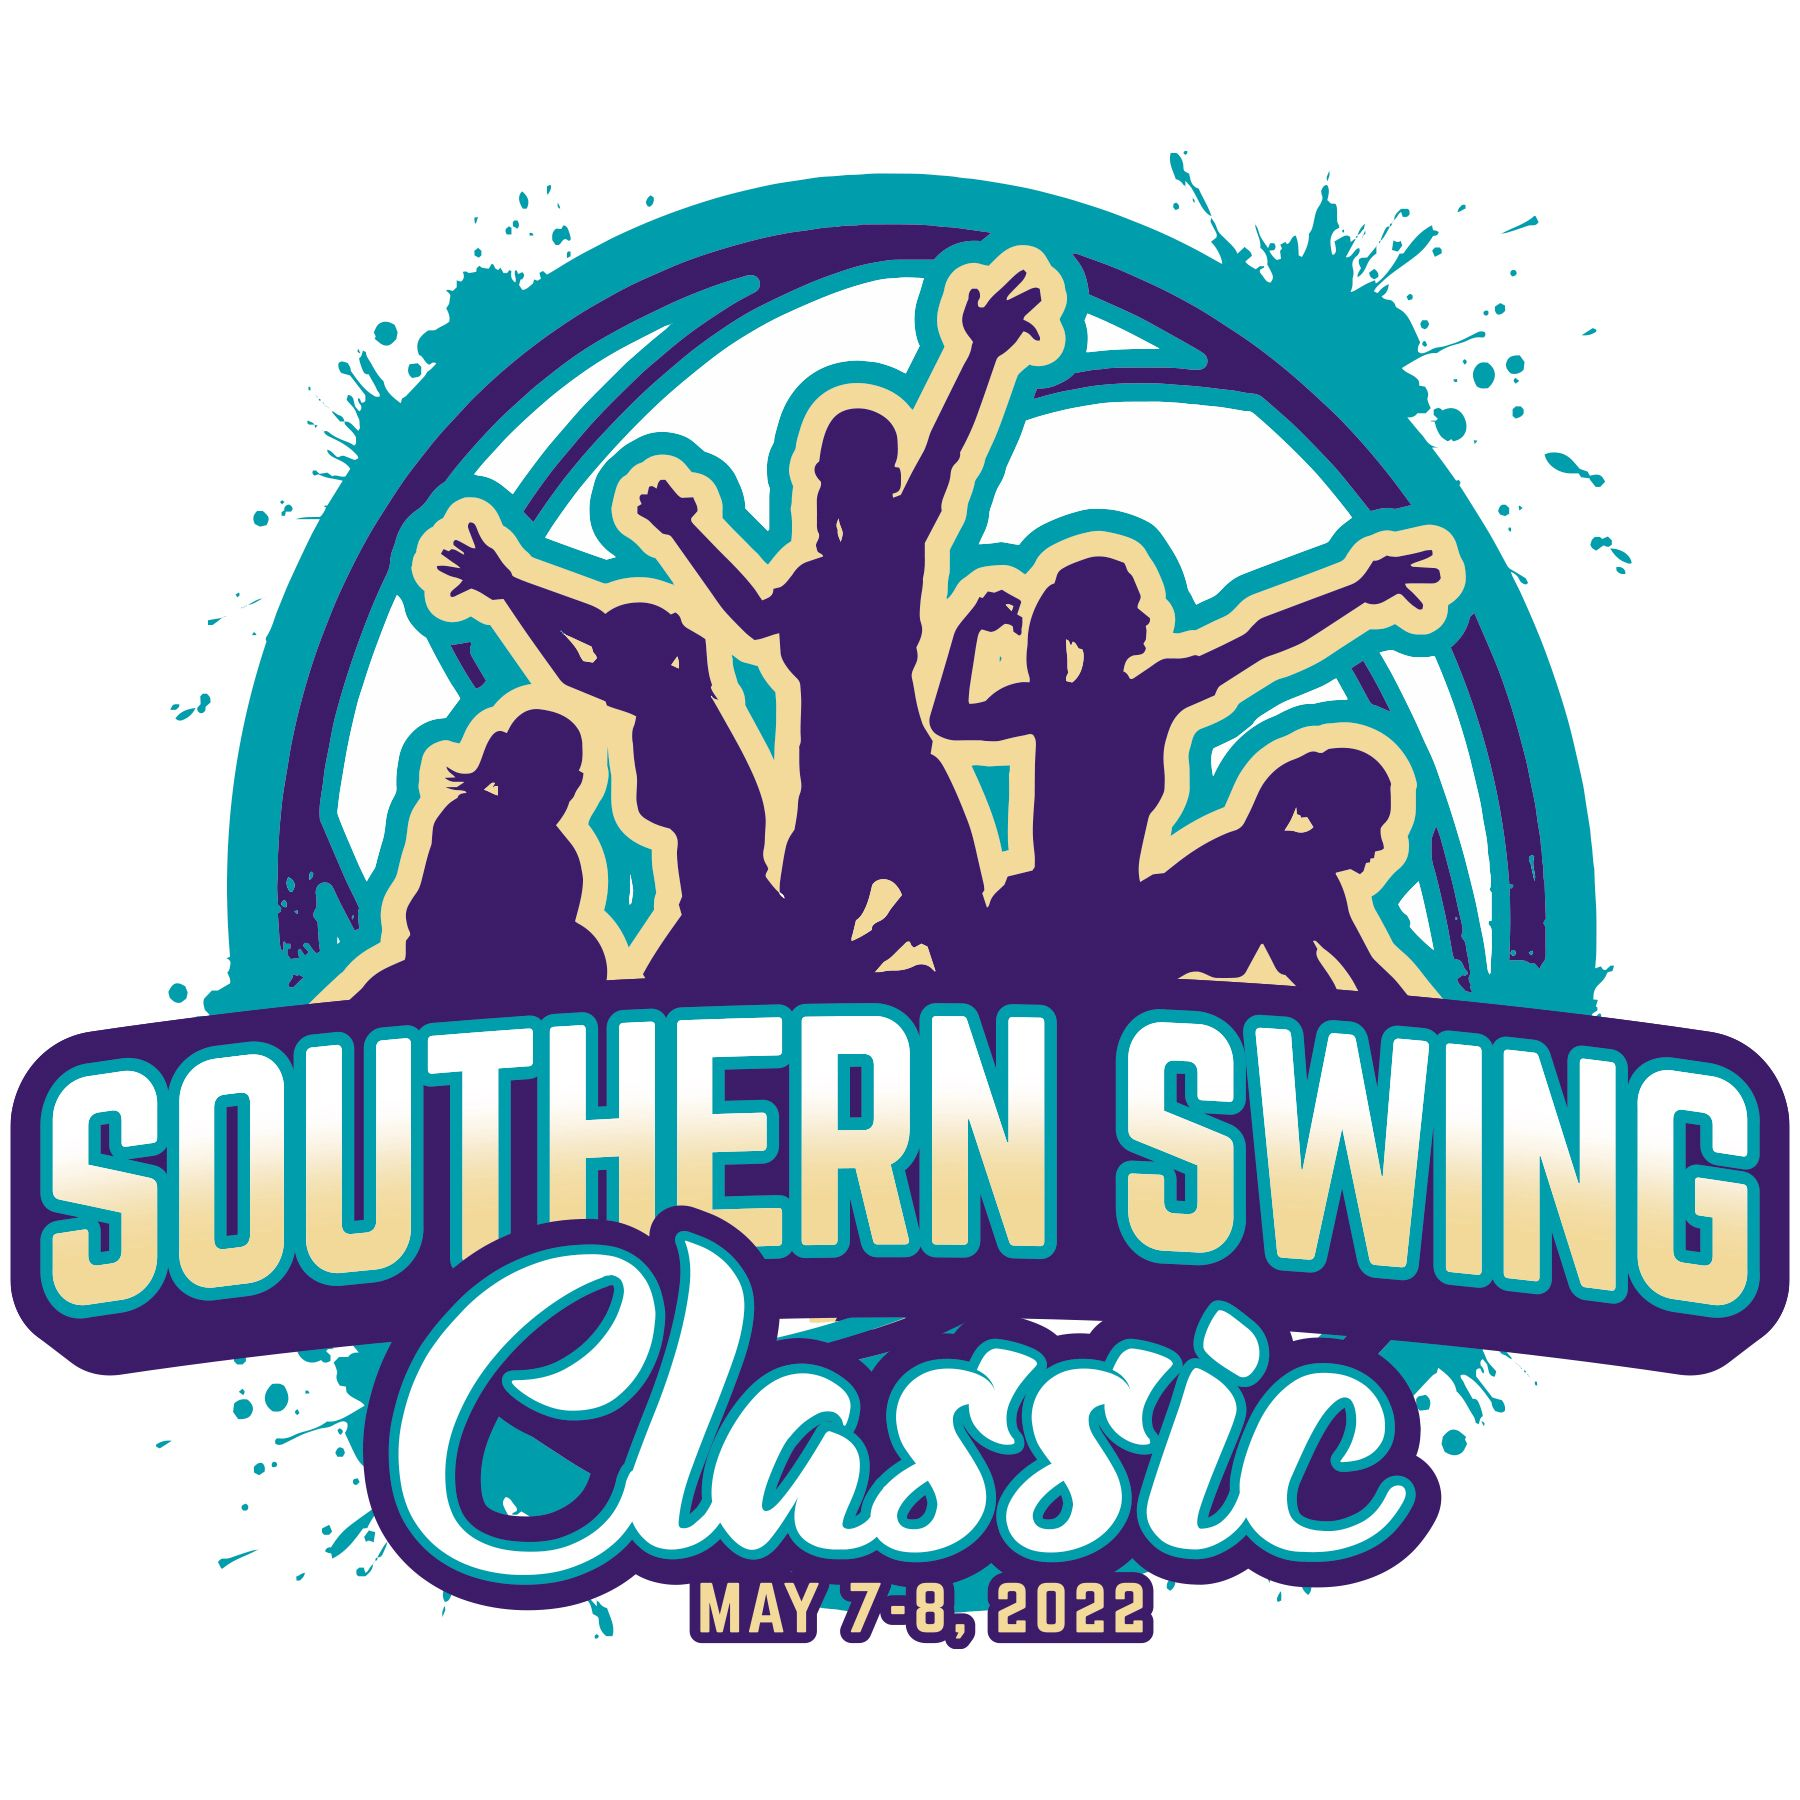 Southern Swing Classic